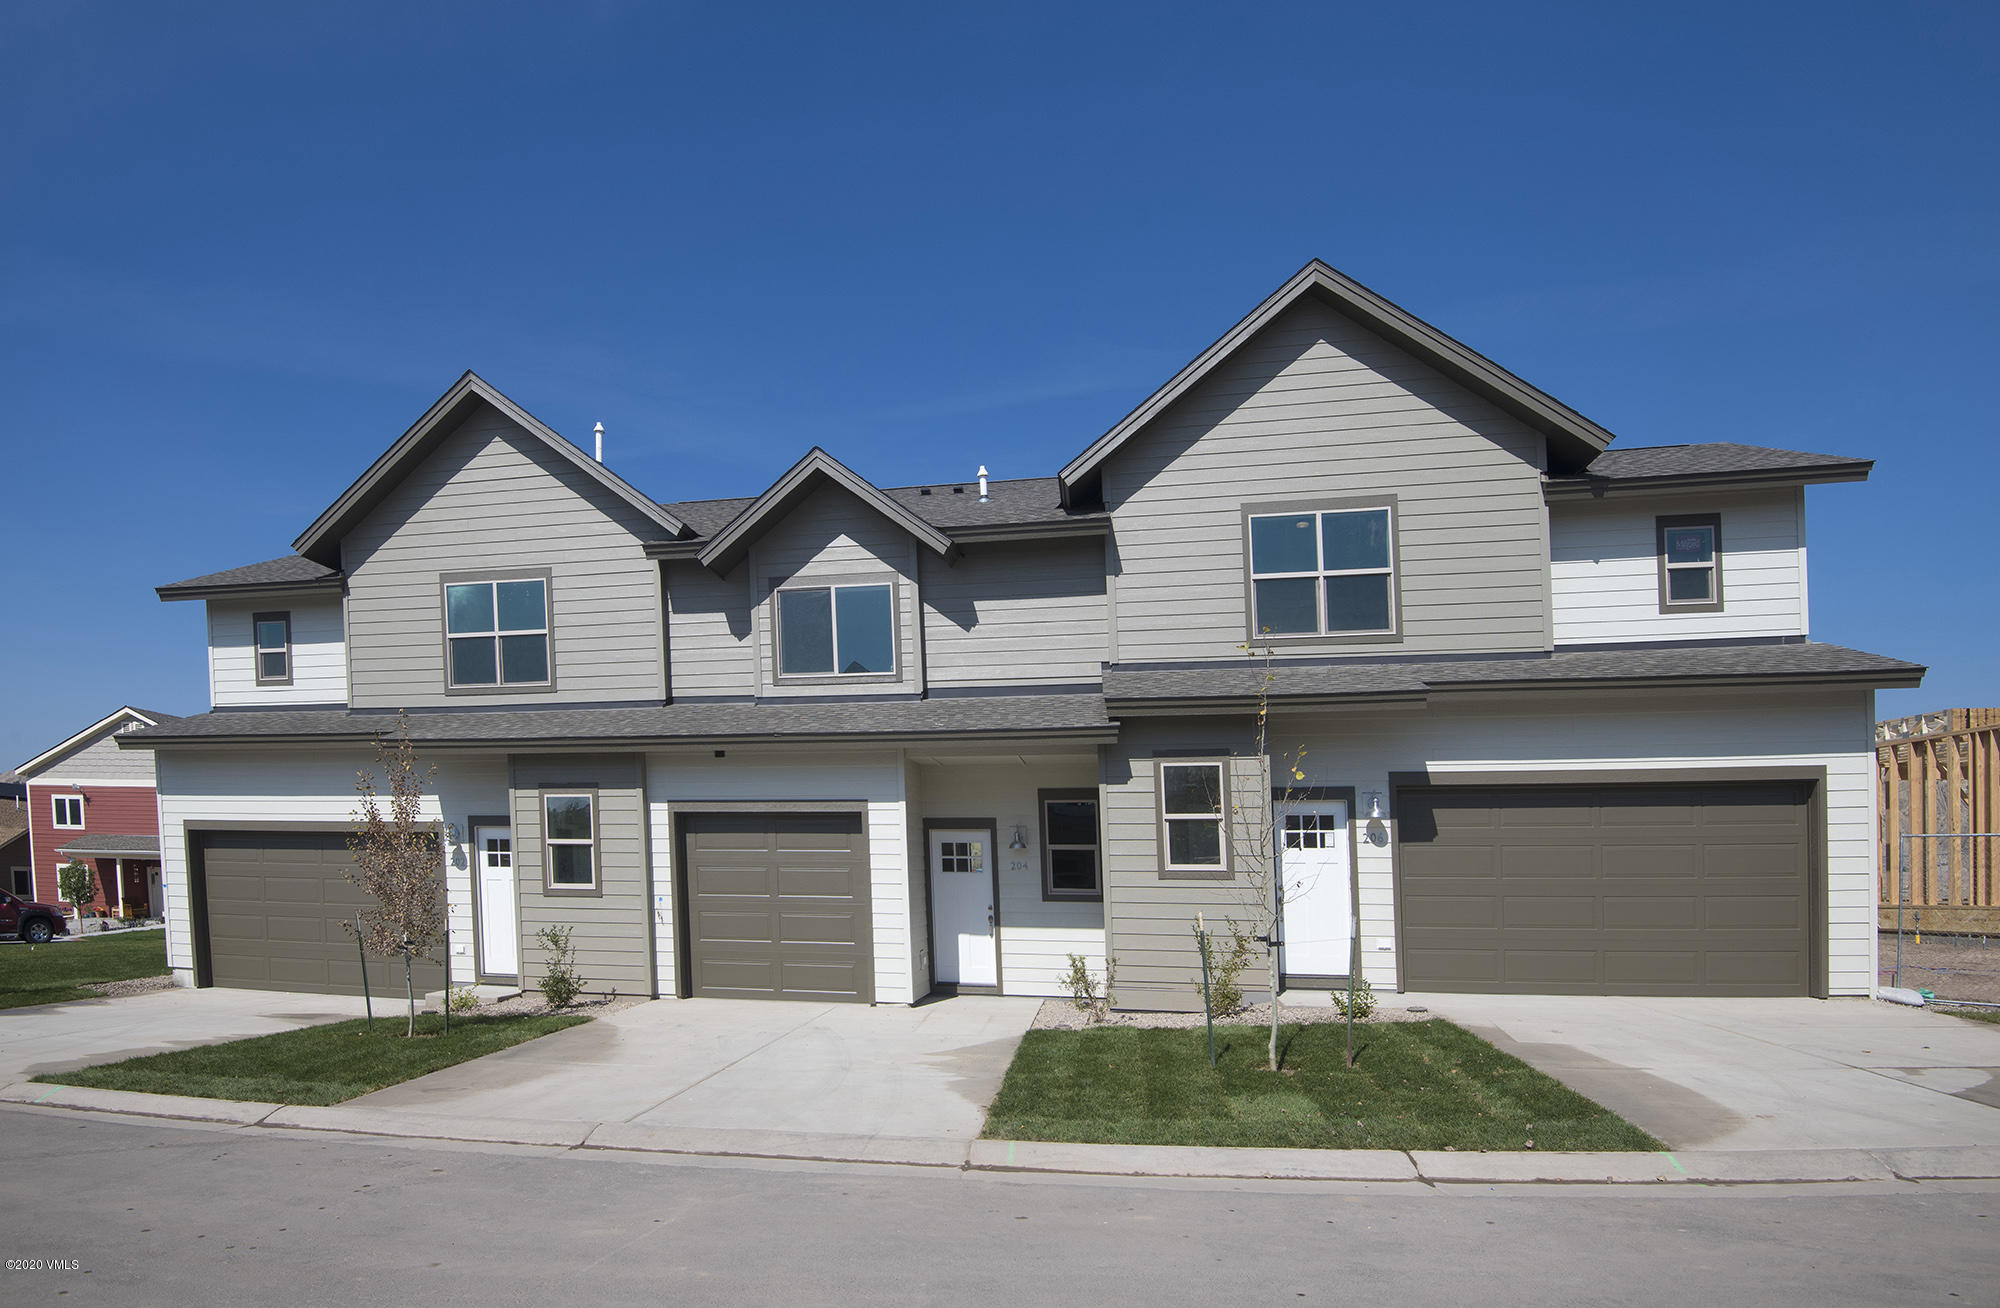 BRAND NEW TOWNHOME! Well-designed, site-built, 3 bedroom, 2.5 bath home with an attached 1-car garage. Incredibly convenient location close to Costco, Gypsum Rec Ctr, and Eagle County Airport. Only minutes to world-class recreation of all types. Standard finishes include vaulted ceilings, LVT flooring, quartz countertops, kitchen pantry, & stainless steel appliances. Laundry room conveniently located on the bedroom level. Interior unit with an amazing price. WELCOME!https://my.matterport.com/show/?m=fB91R2FgCiF&brand=0